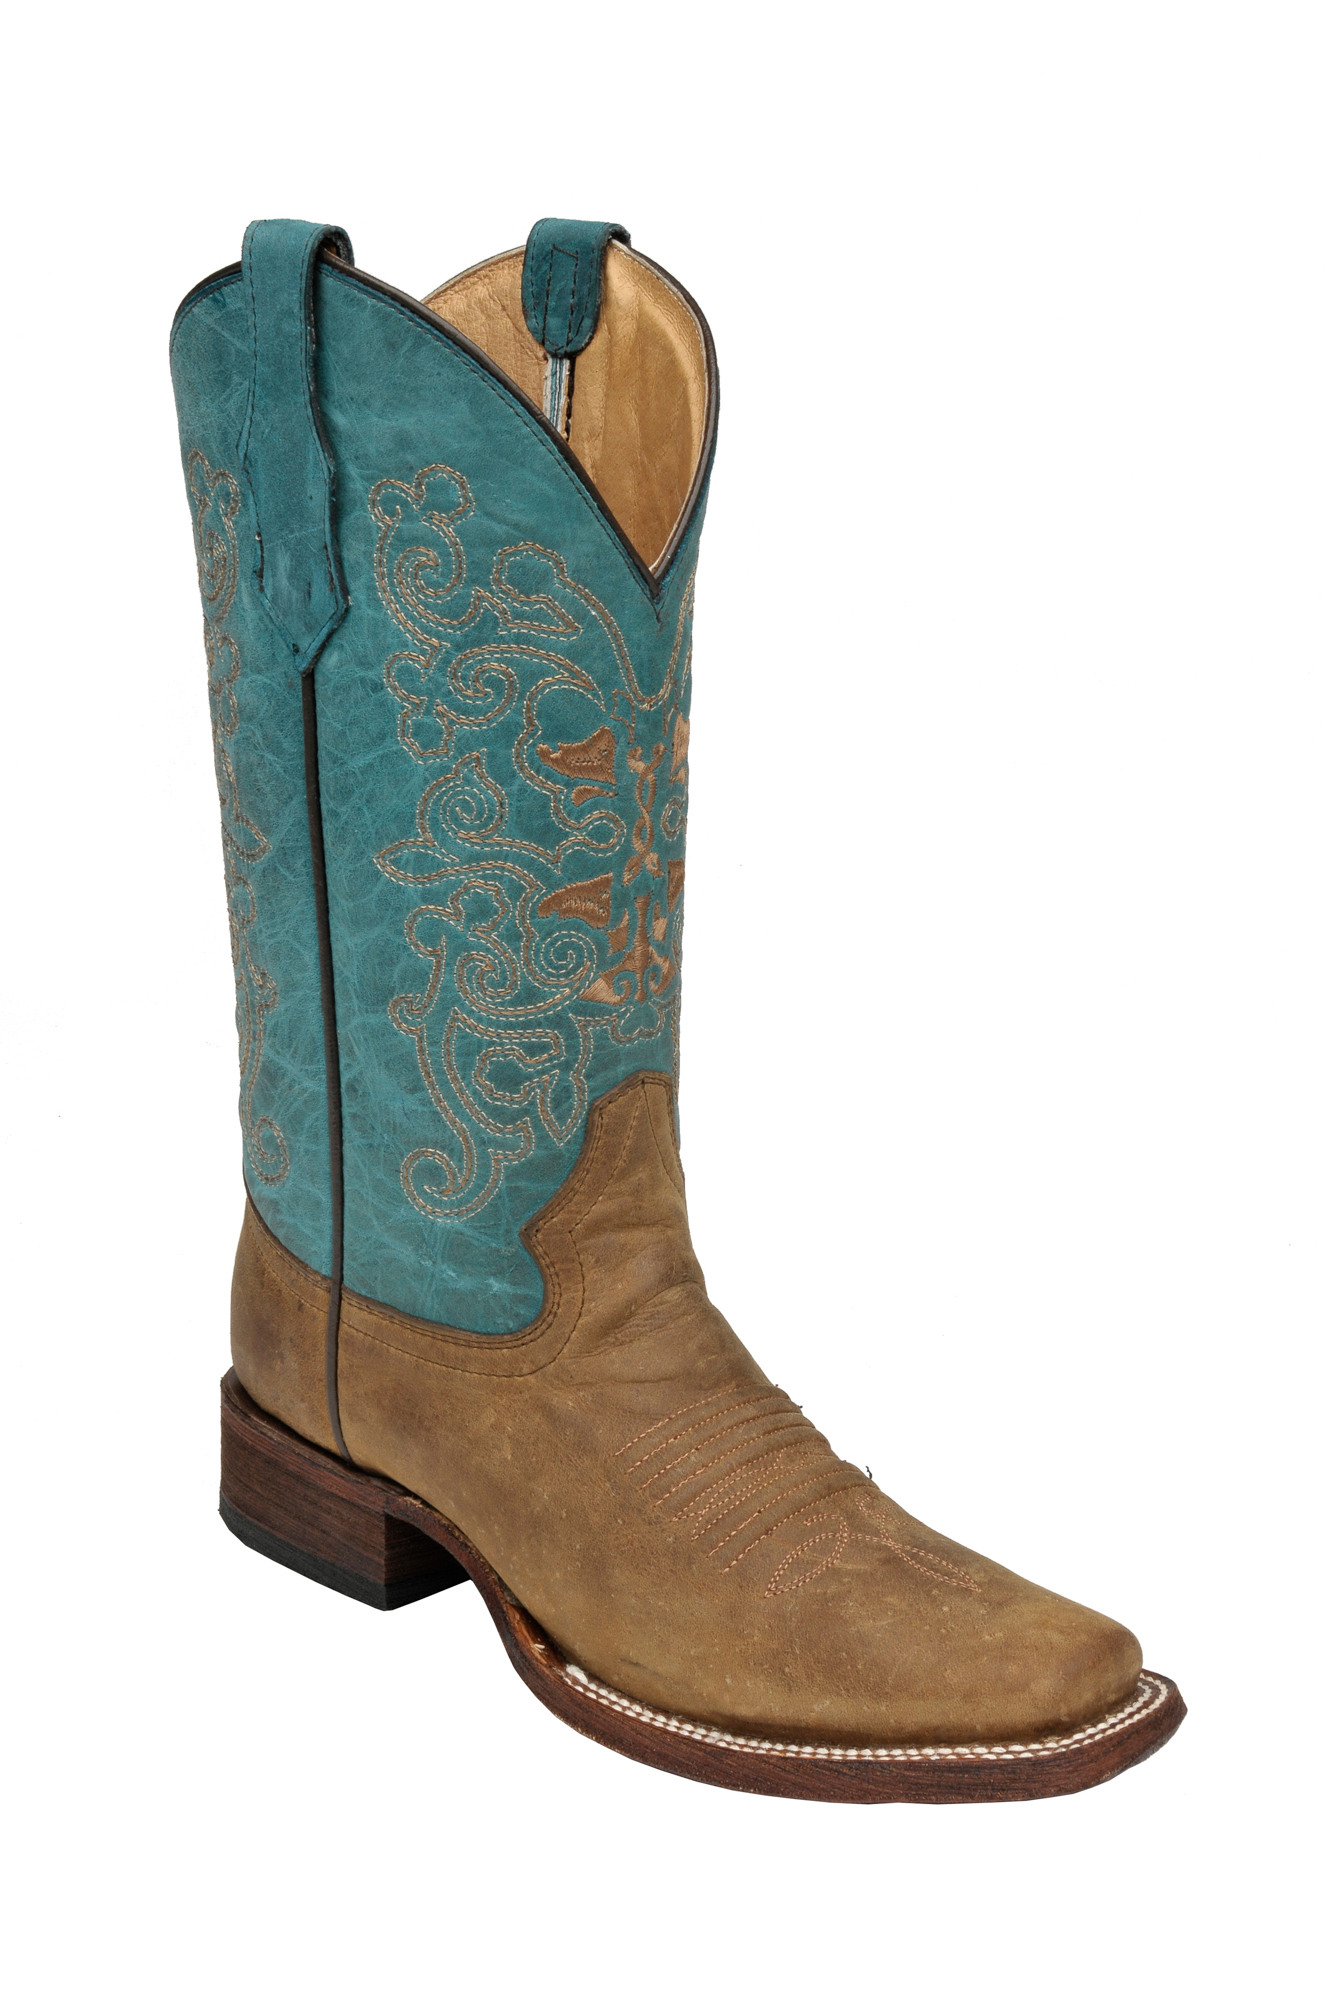 Unique Details About Corral # R1213 Turquoise Inlay Studded U0026 Embroidered Cowgirl Boots - Snip Toe ...